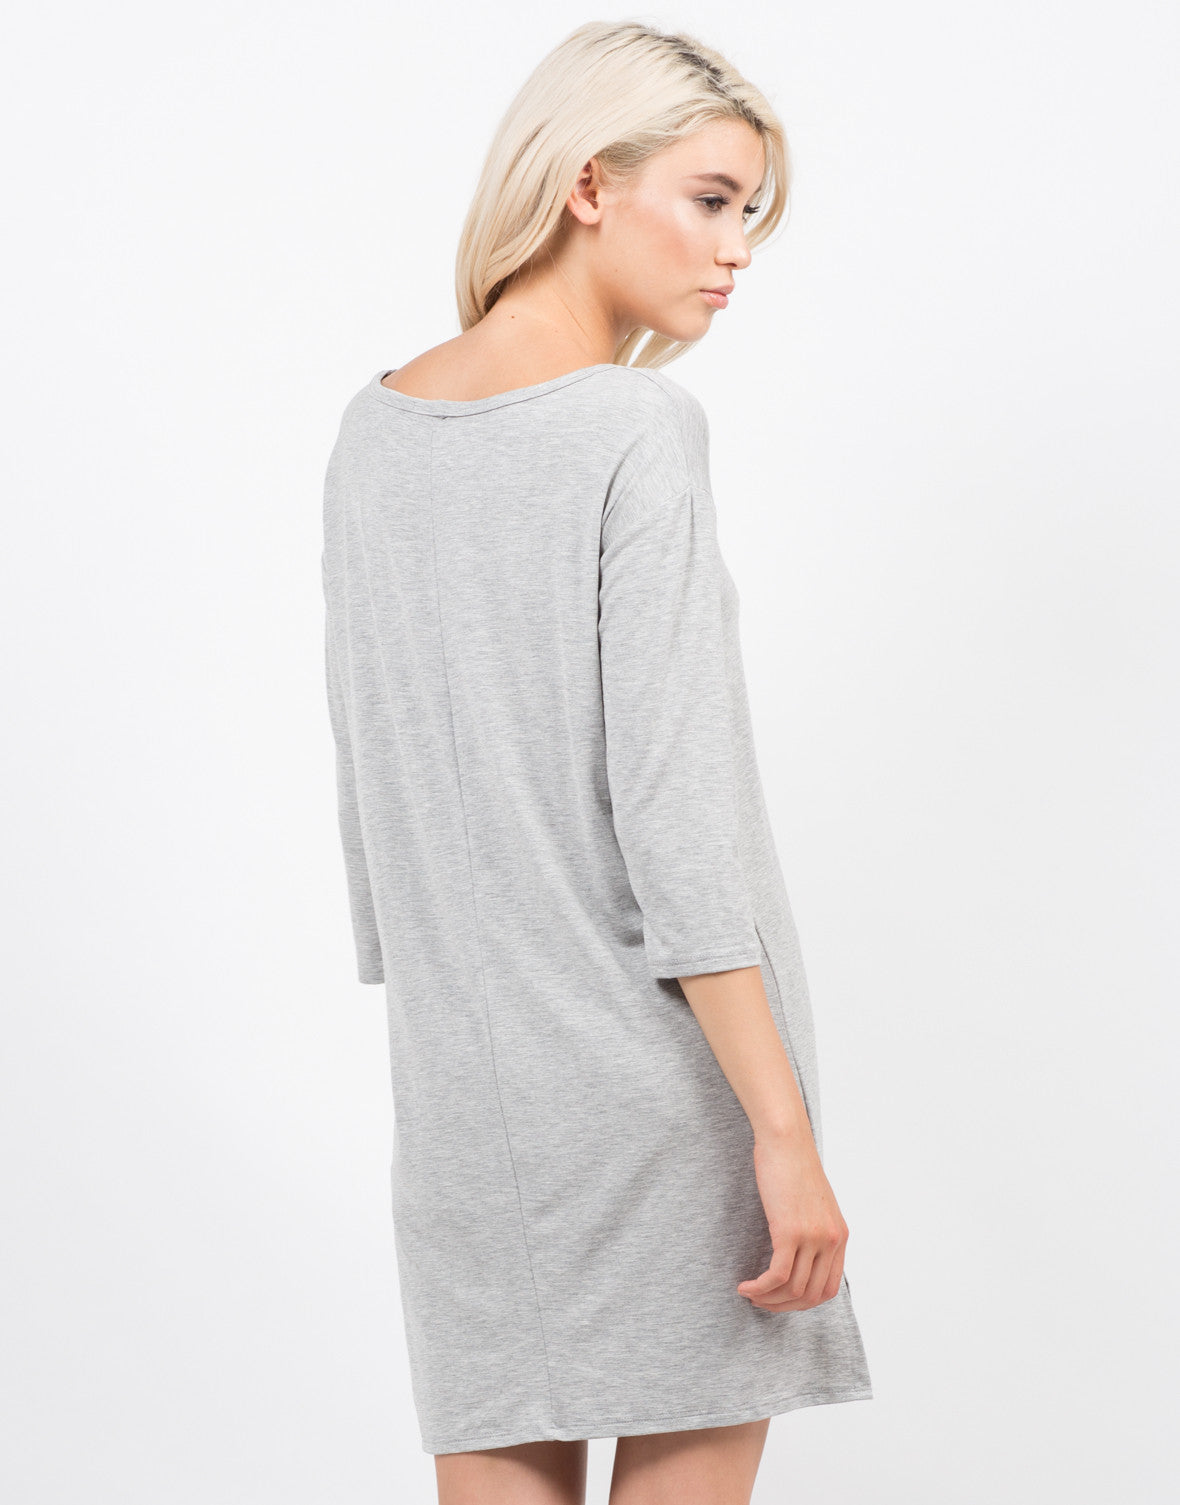 Back View of Hi Low Simple Pocket Dress